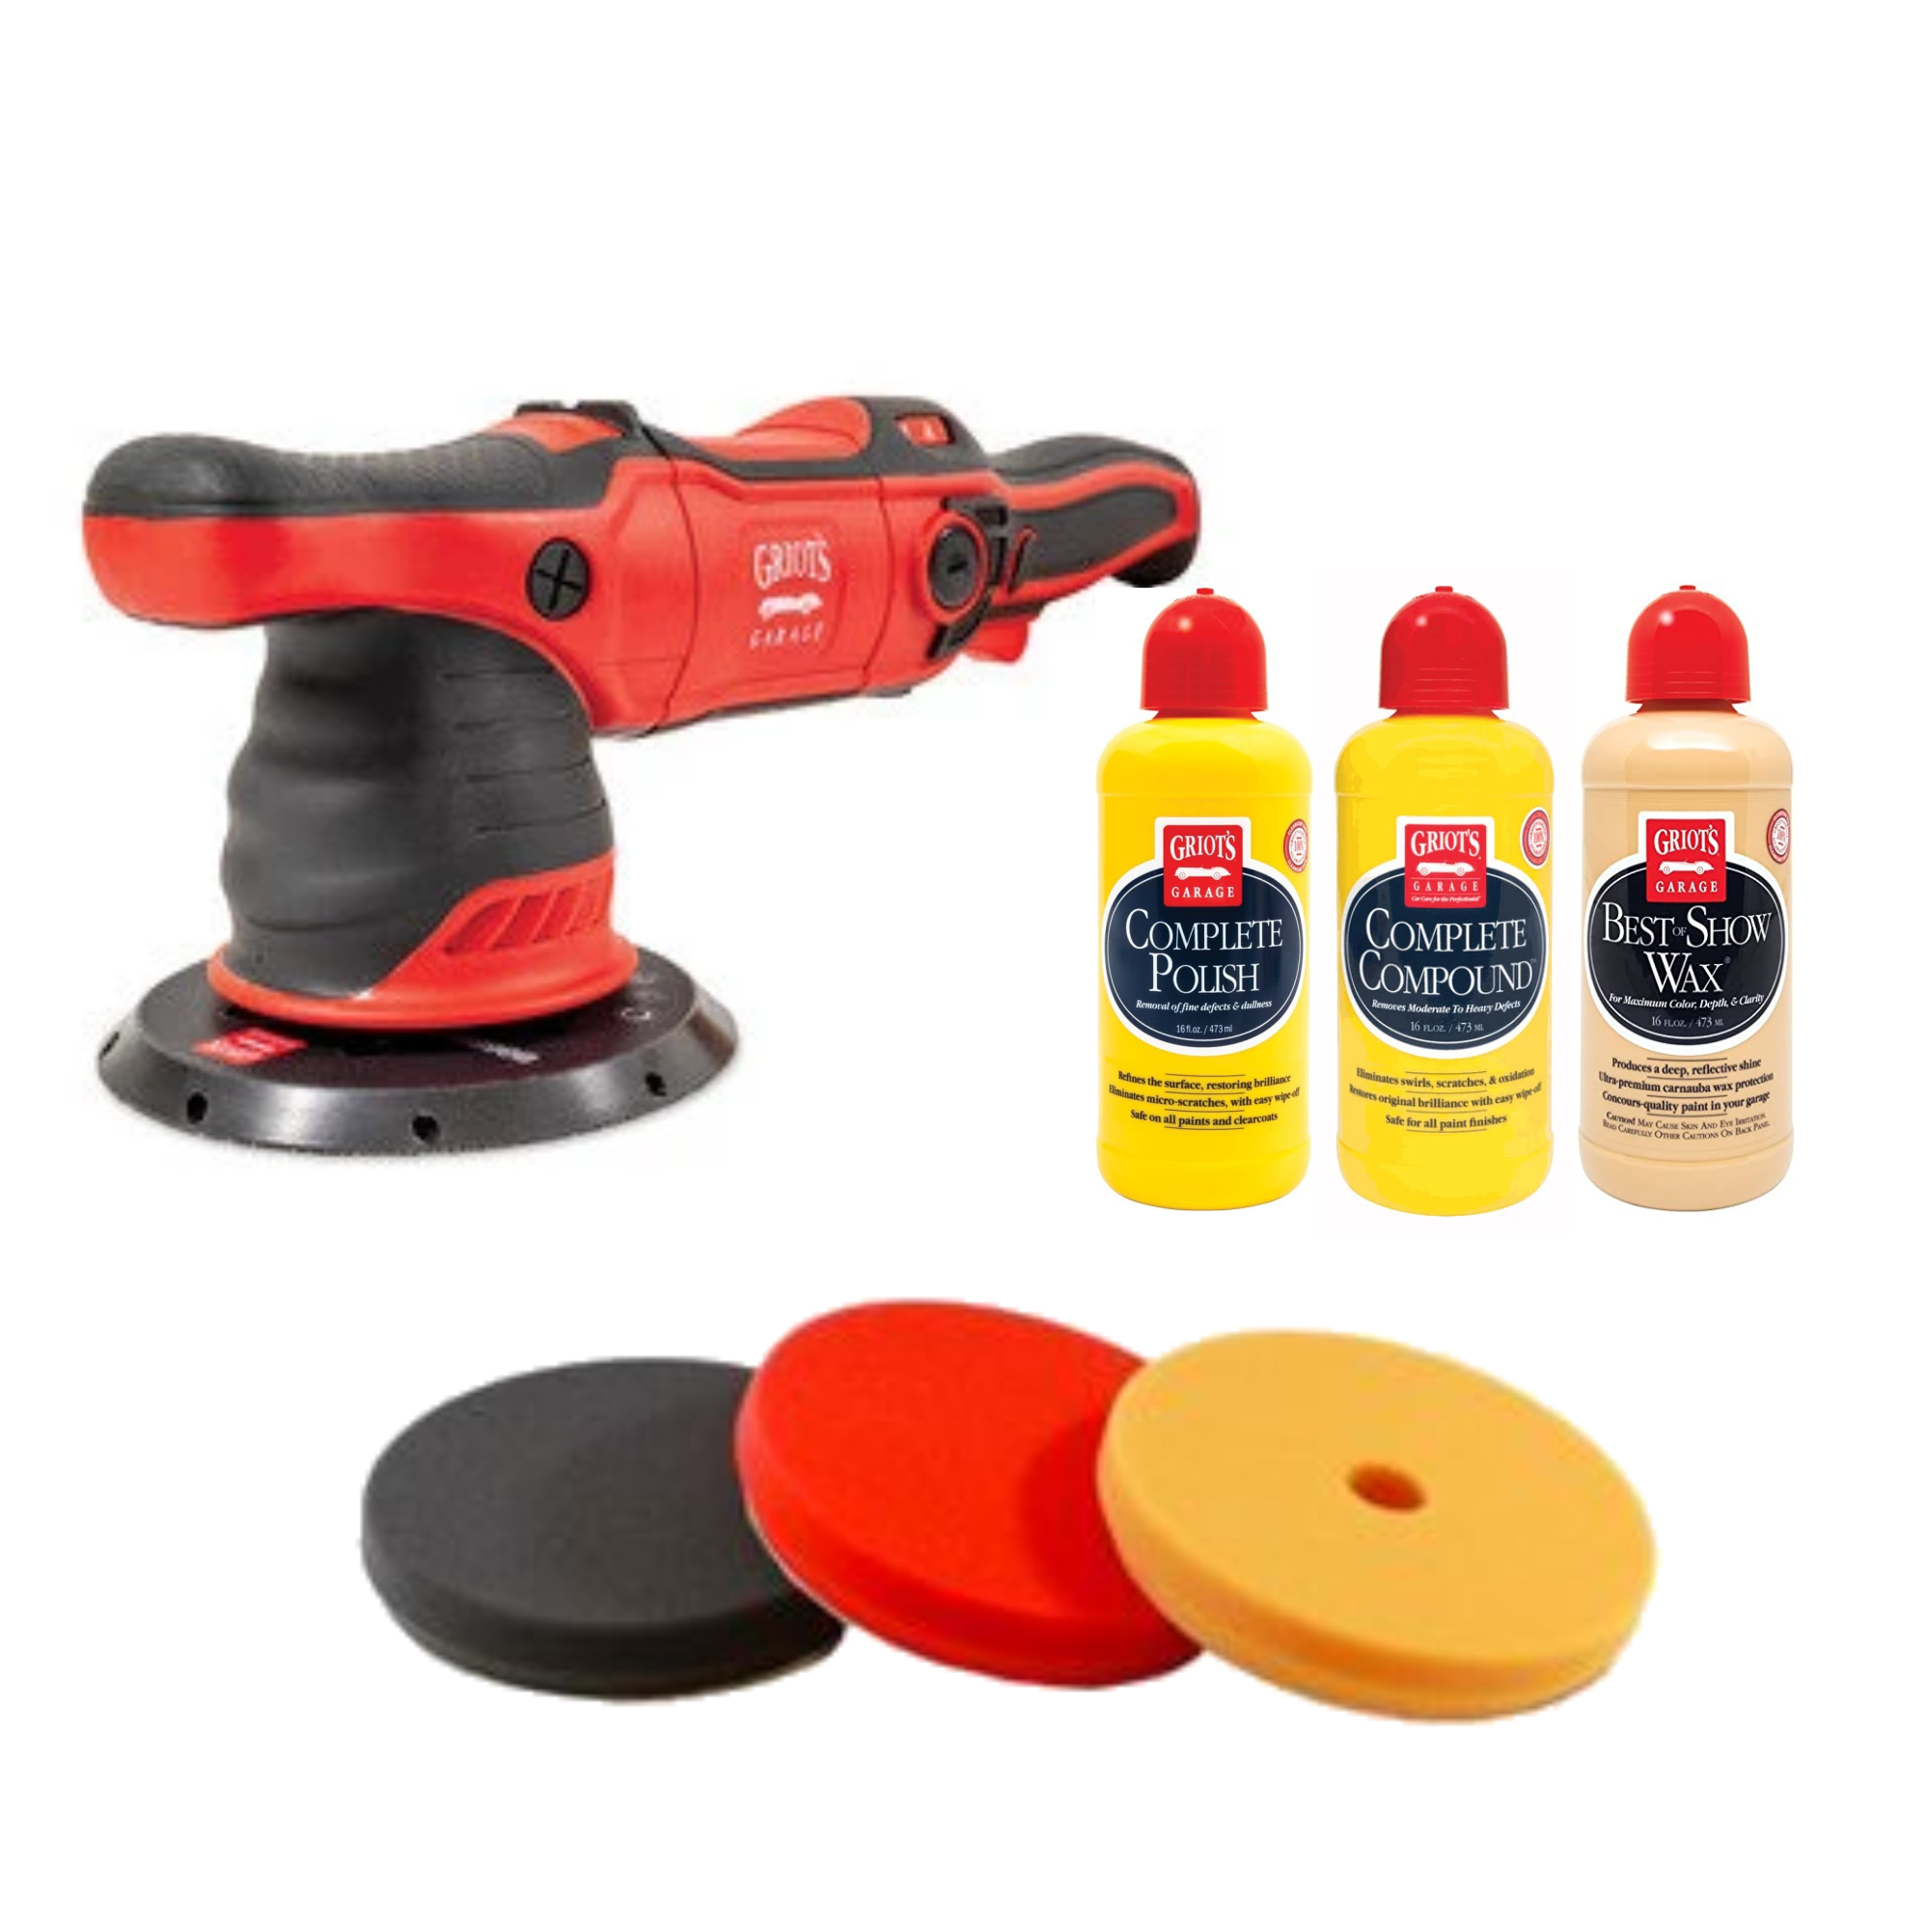 Griot's G9 Pad & Products Kit